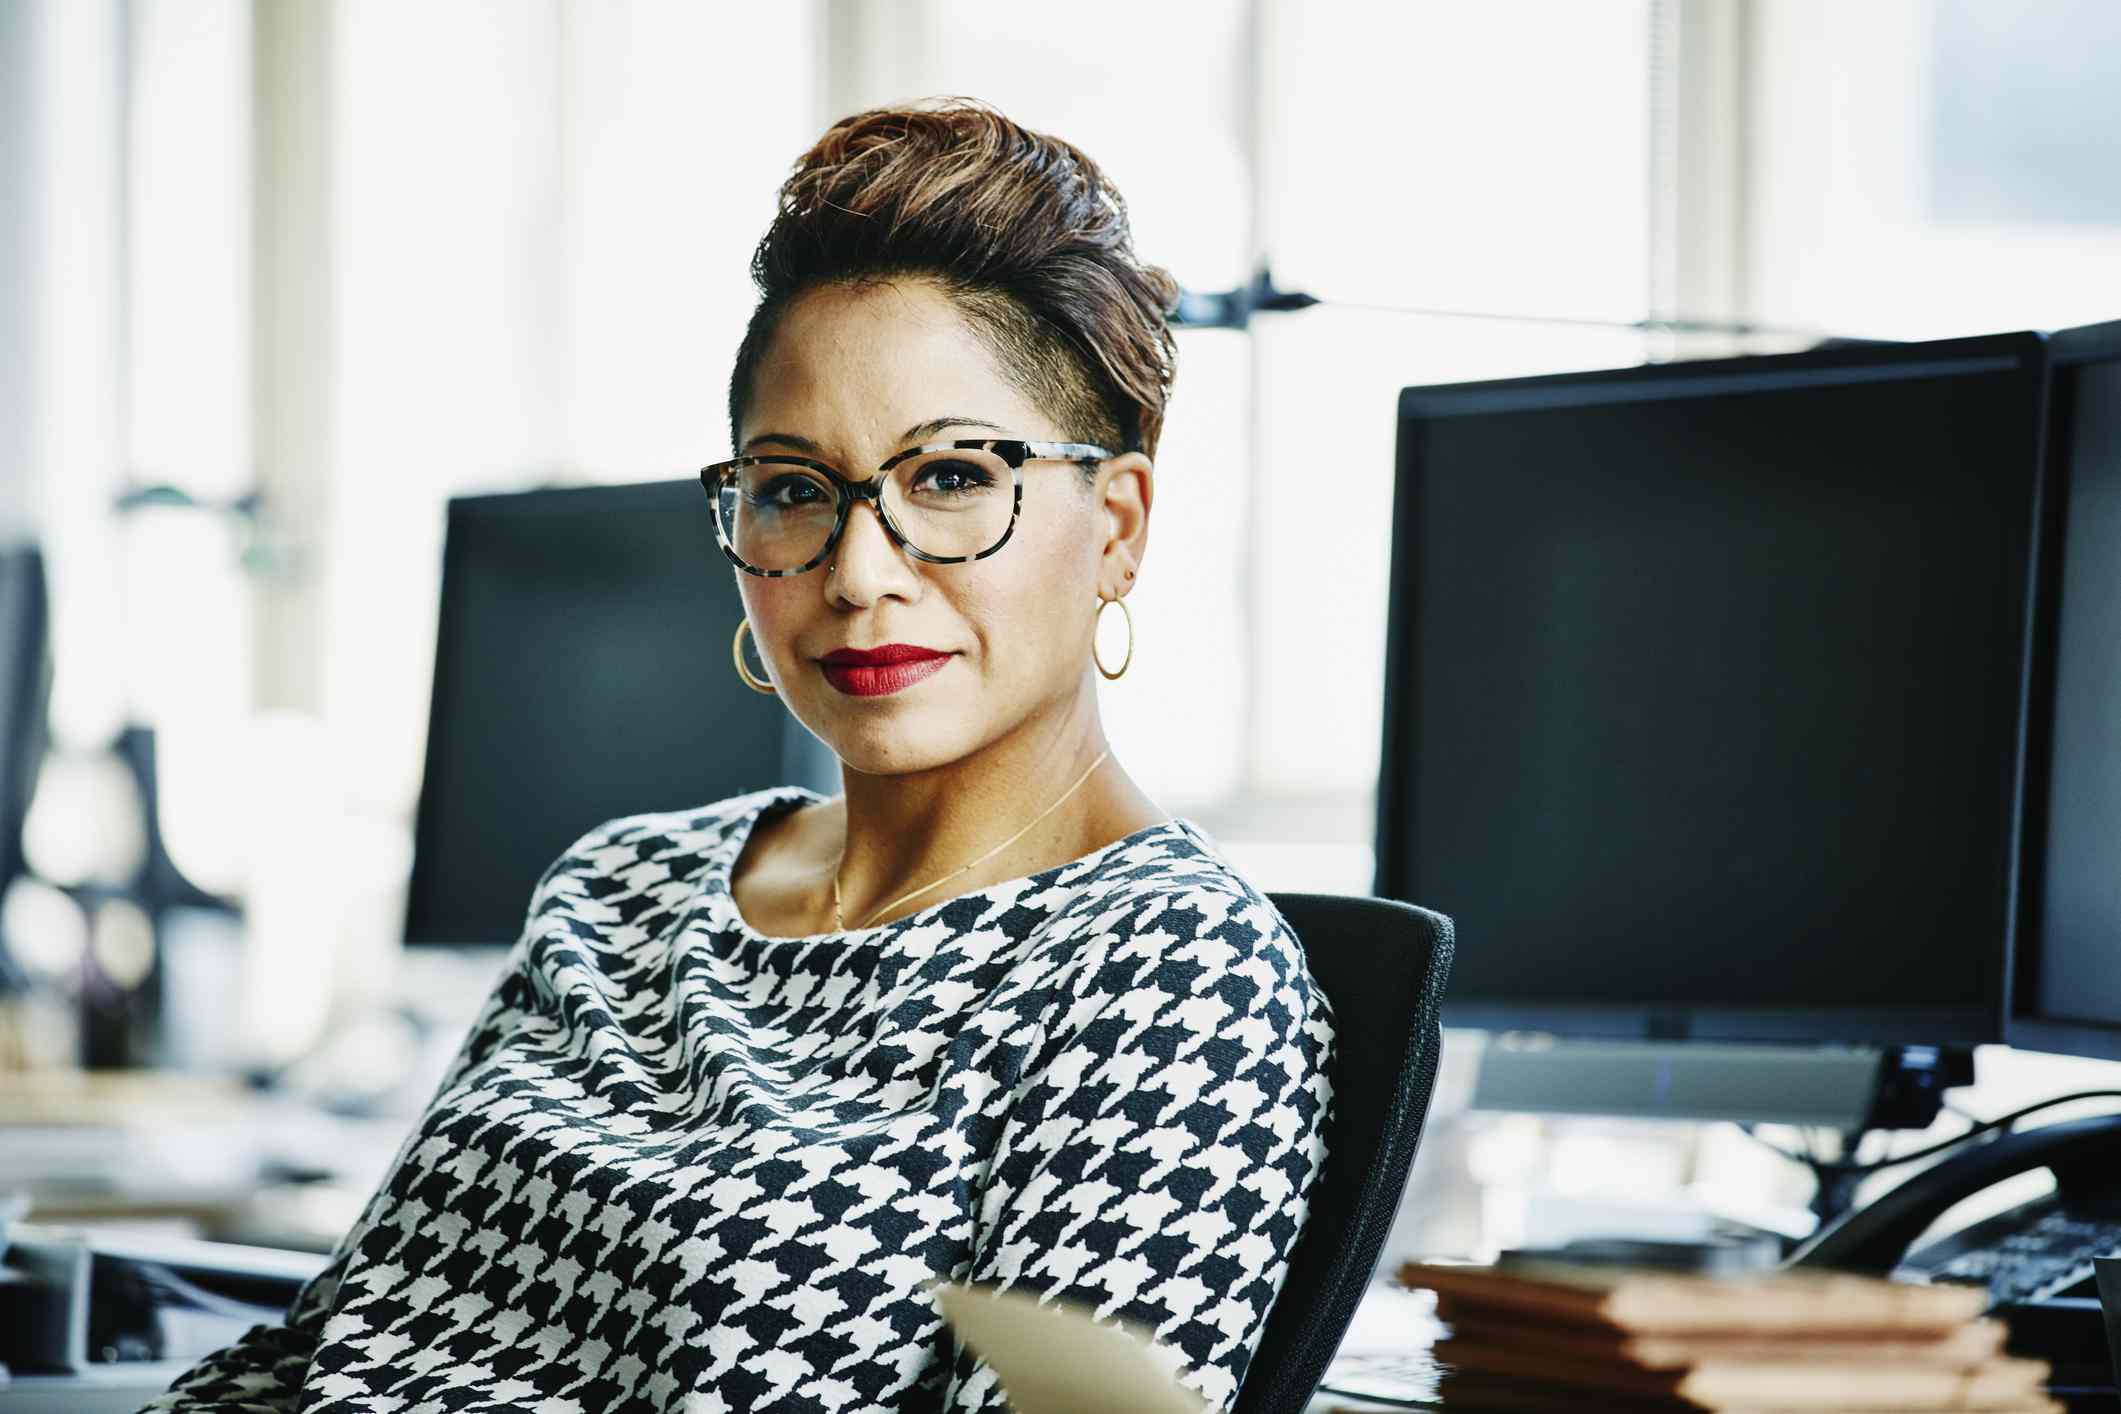 Woman with glasses at desk